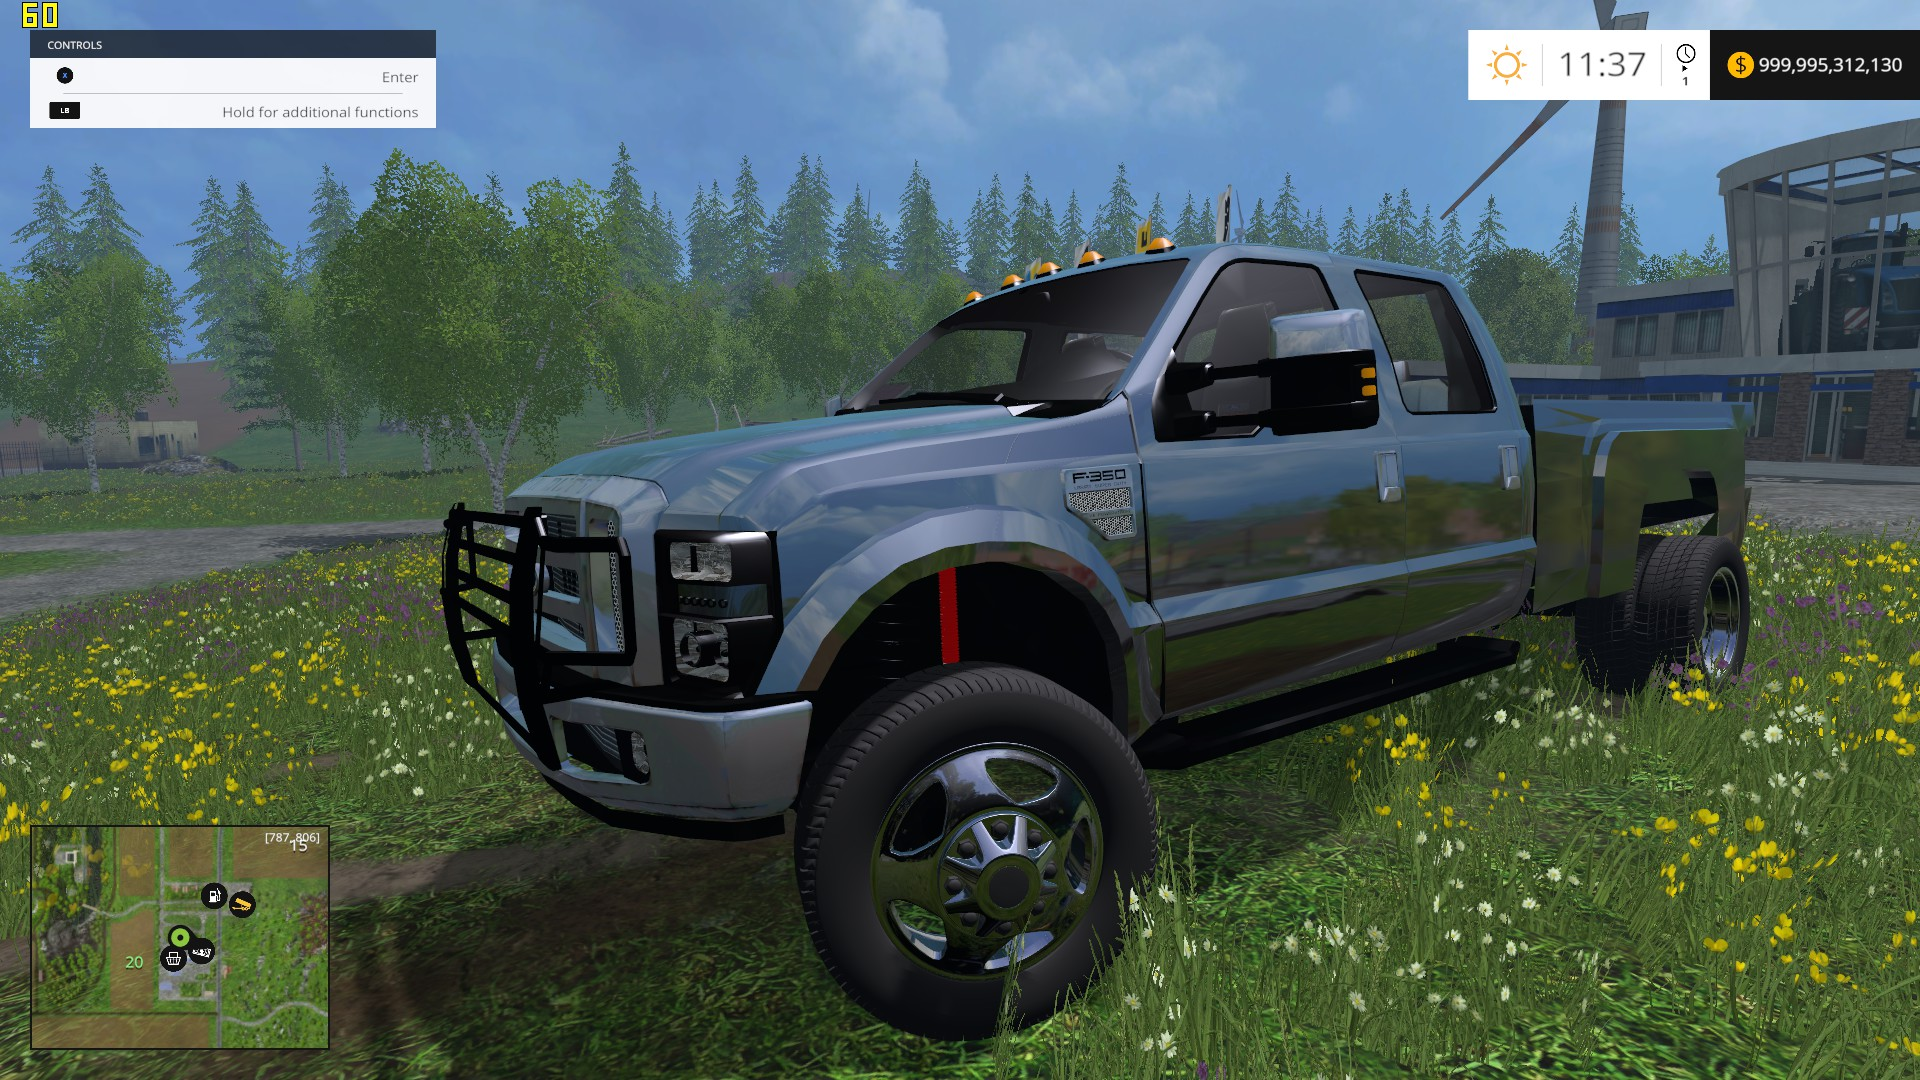 f350 ford diesel pickup black truck farming simulator 2017 2015 15 17 ls mod - Ford Truck 2015 Black